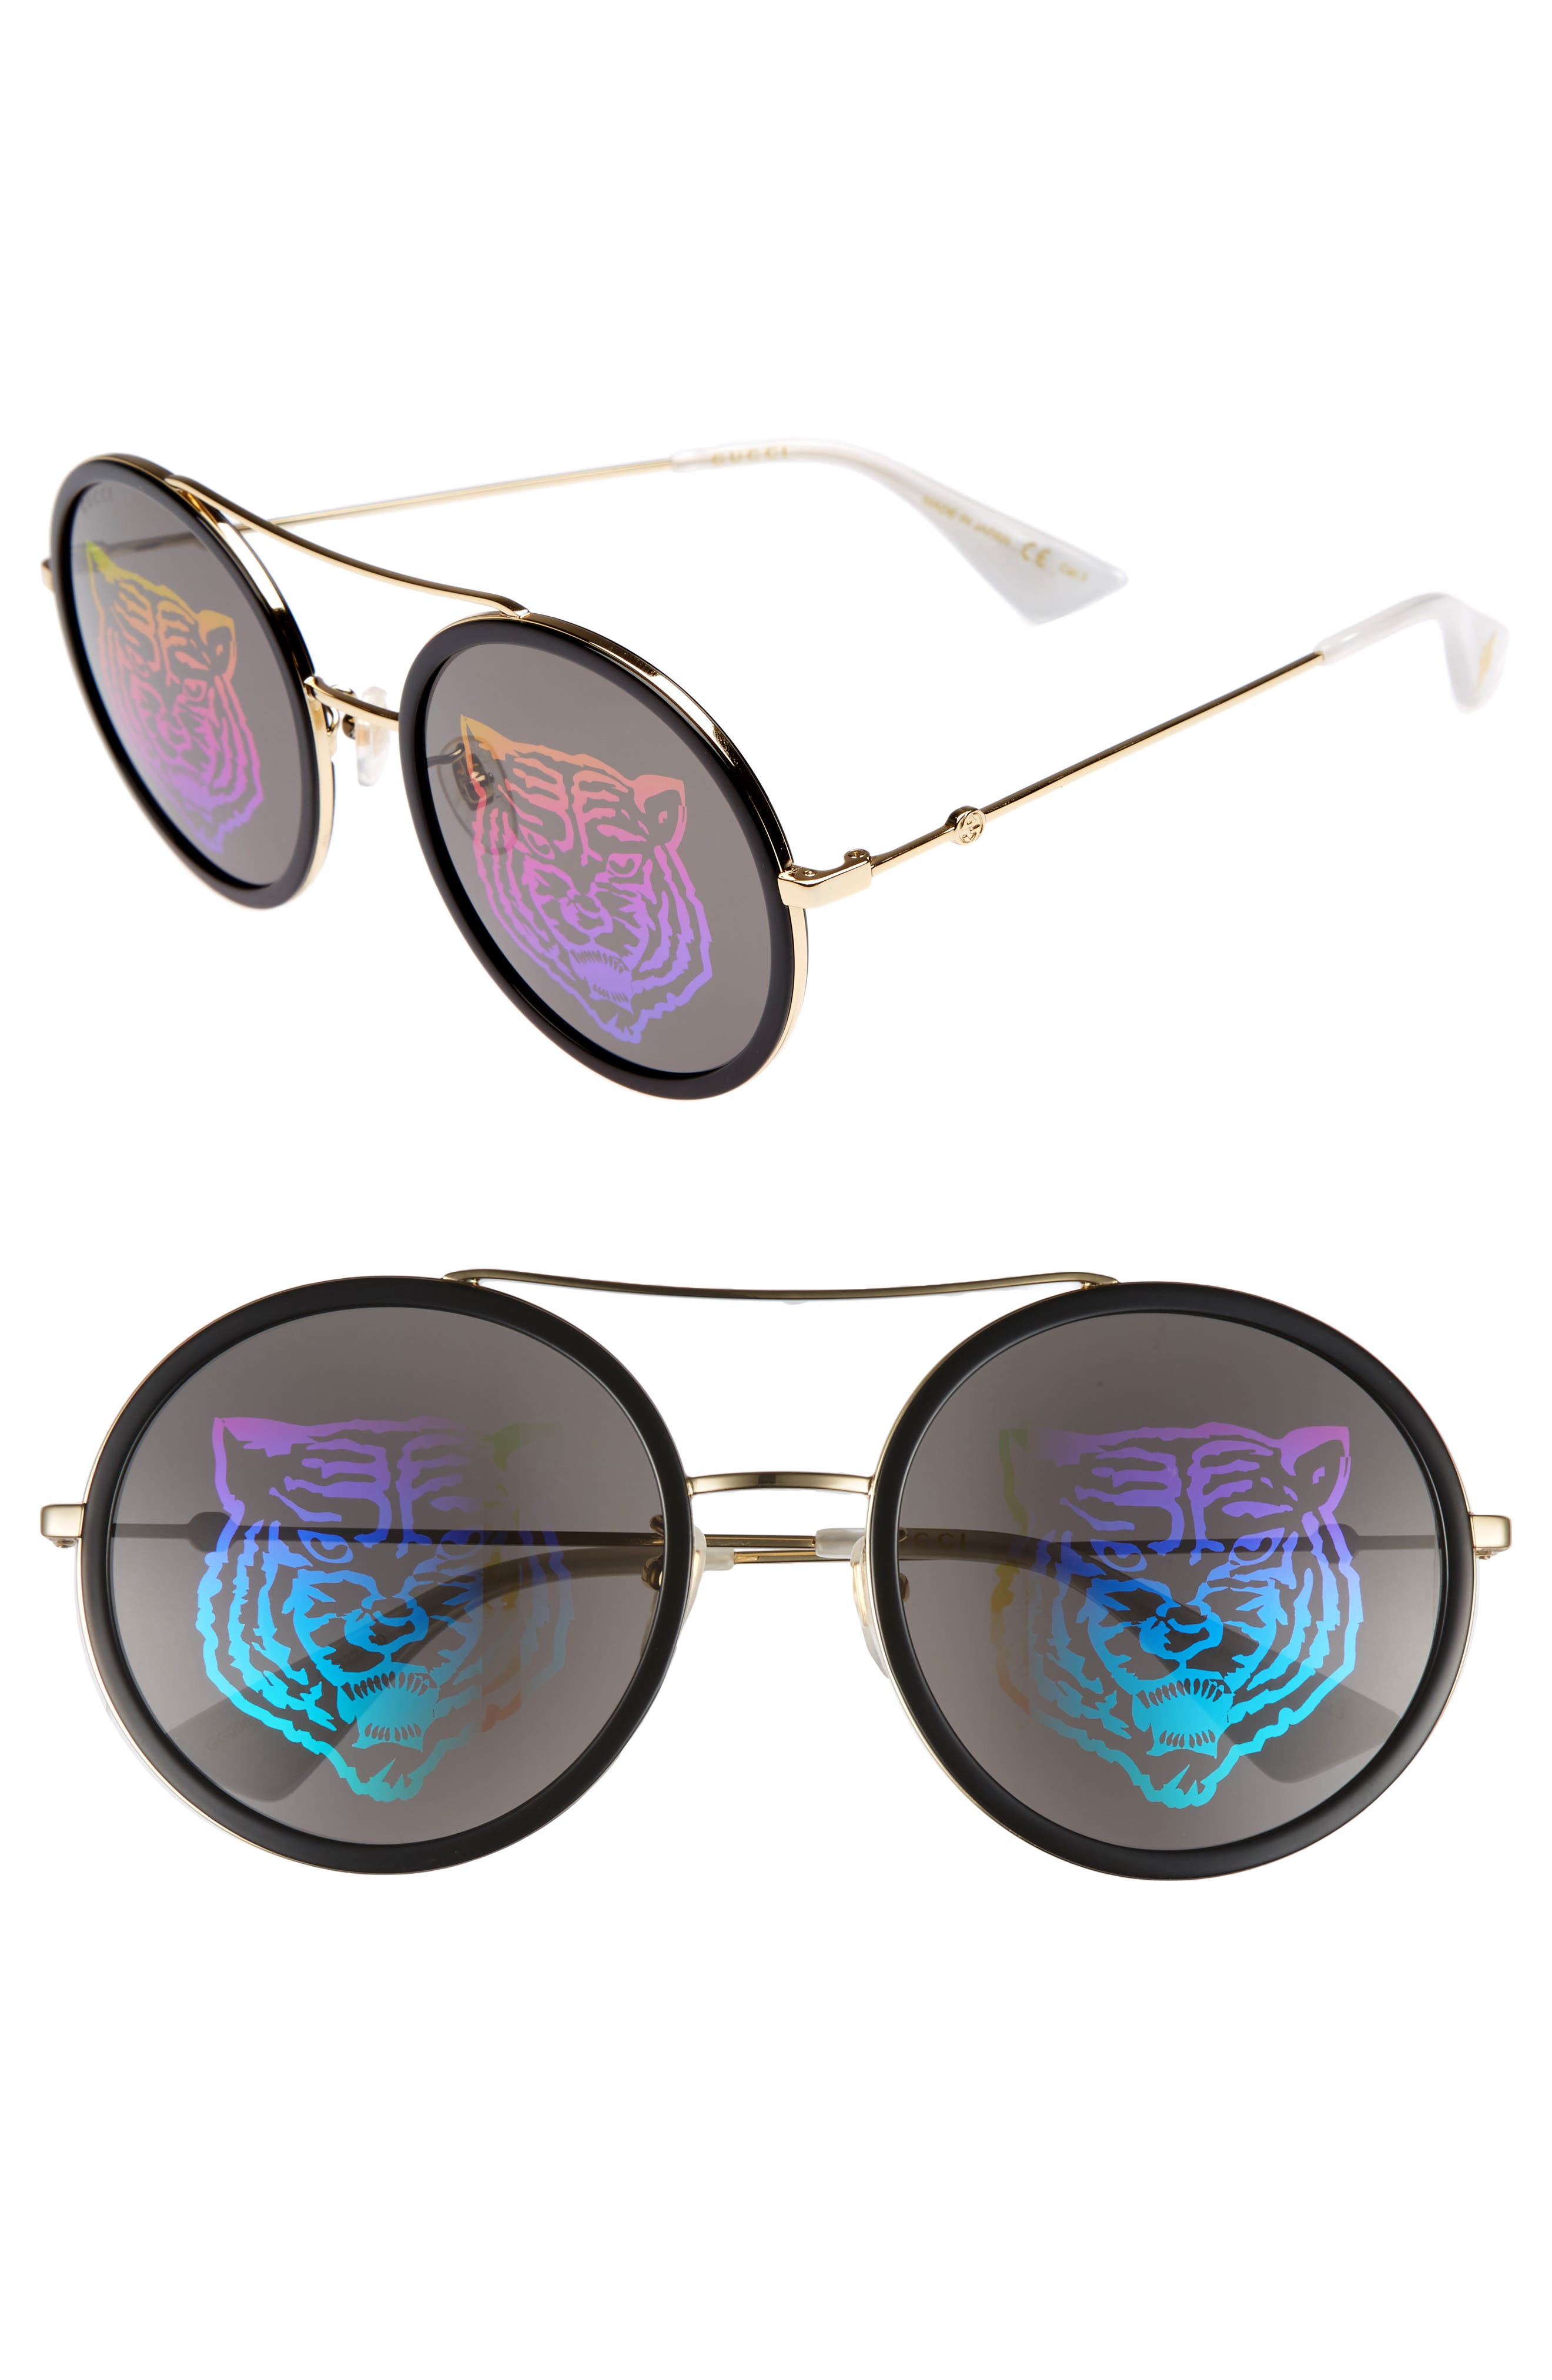 56mm Round Mirrored Aviator Sunglasses,                             Main thumbnail 1, color,                             Gold/ Pearl